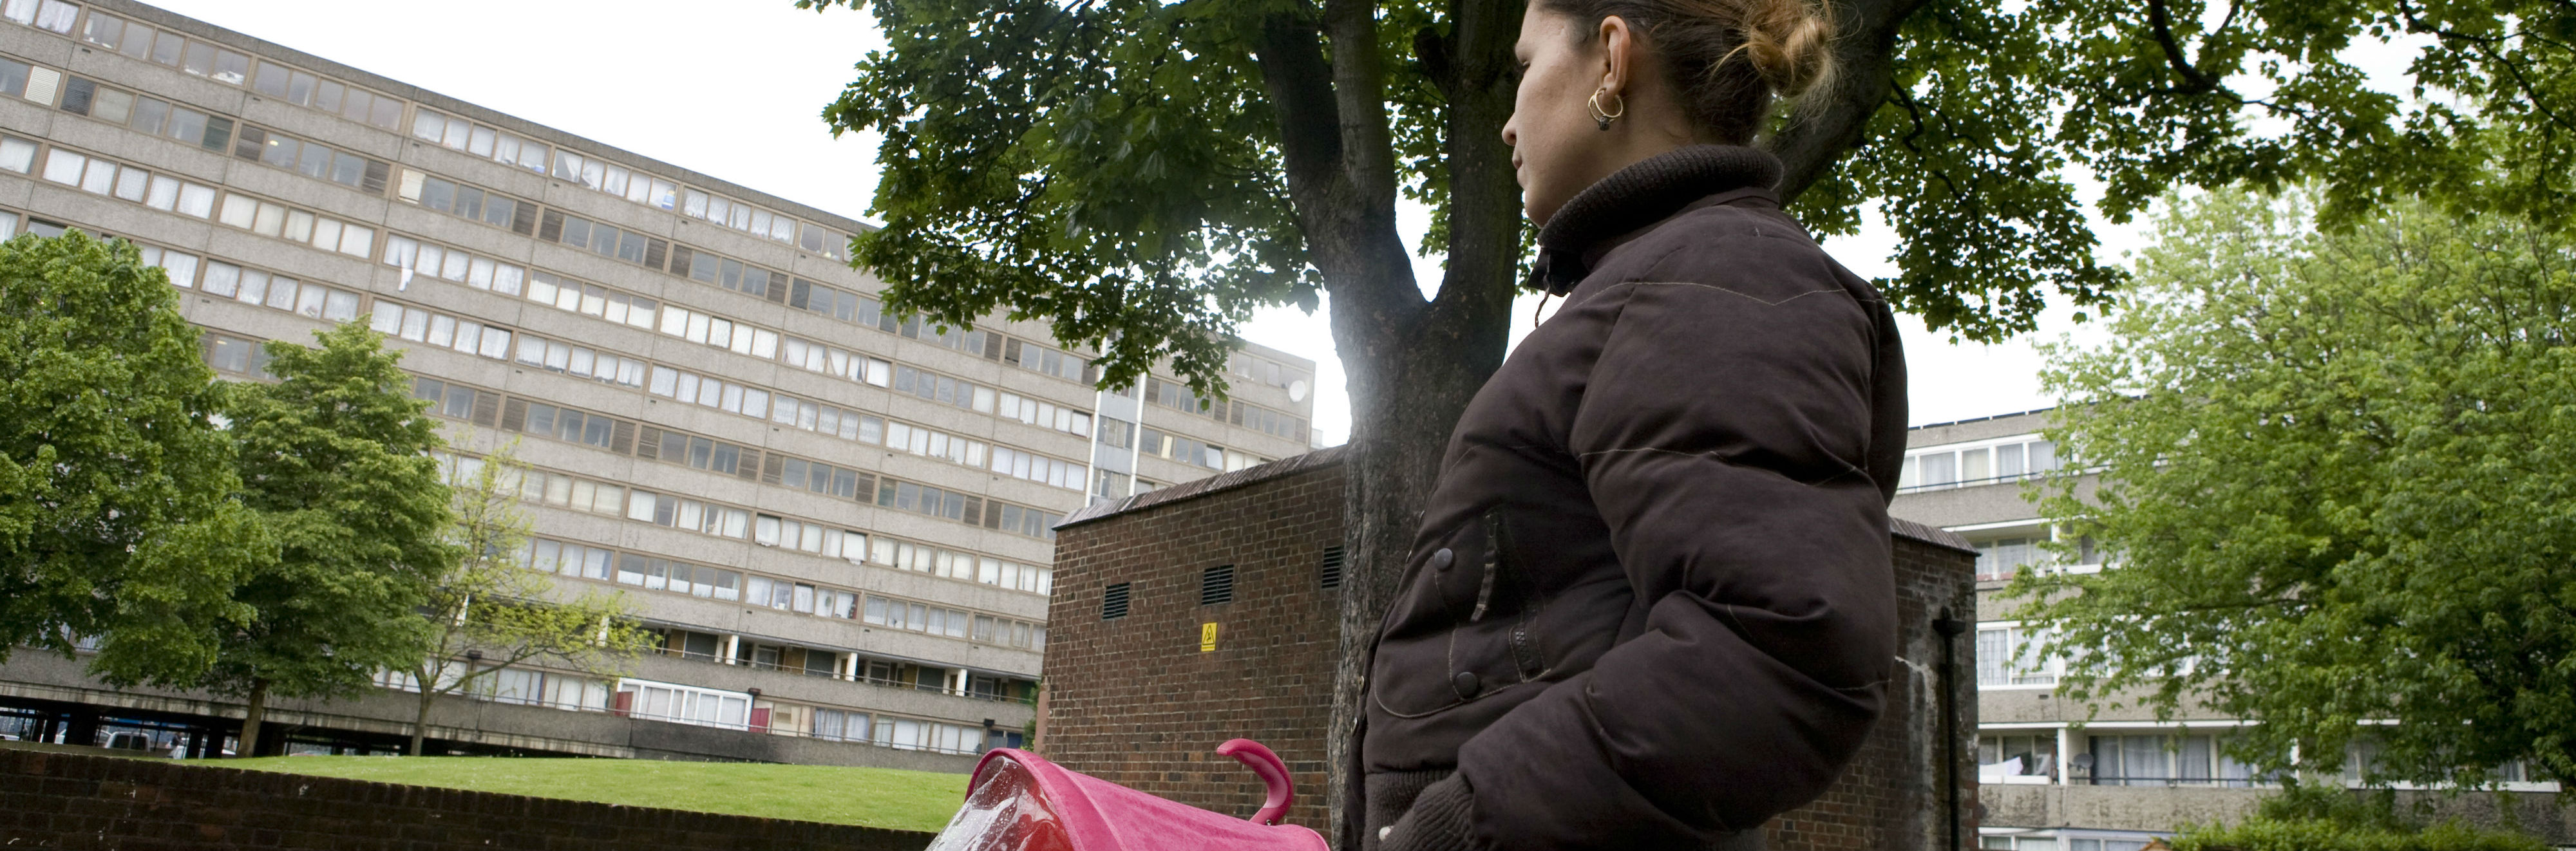 Britain S Troubled Families Mirage Or Moral Threat